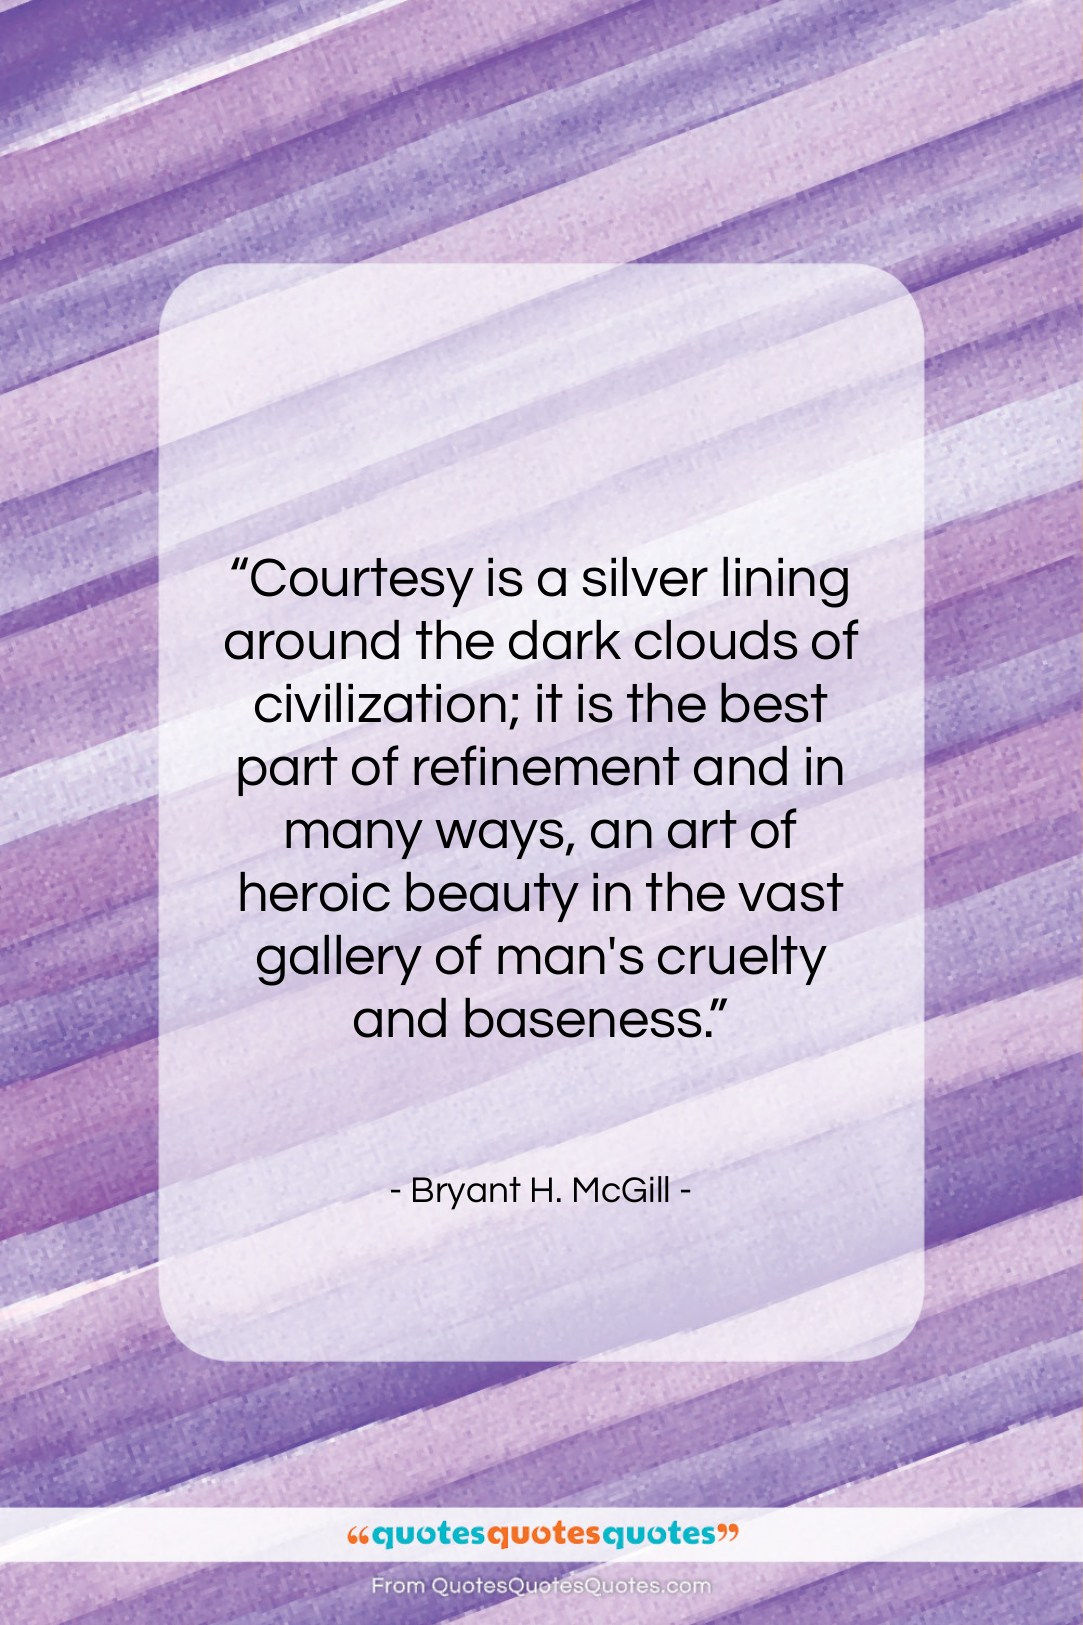 Get the whole Bryant H. McGill quote: \